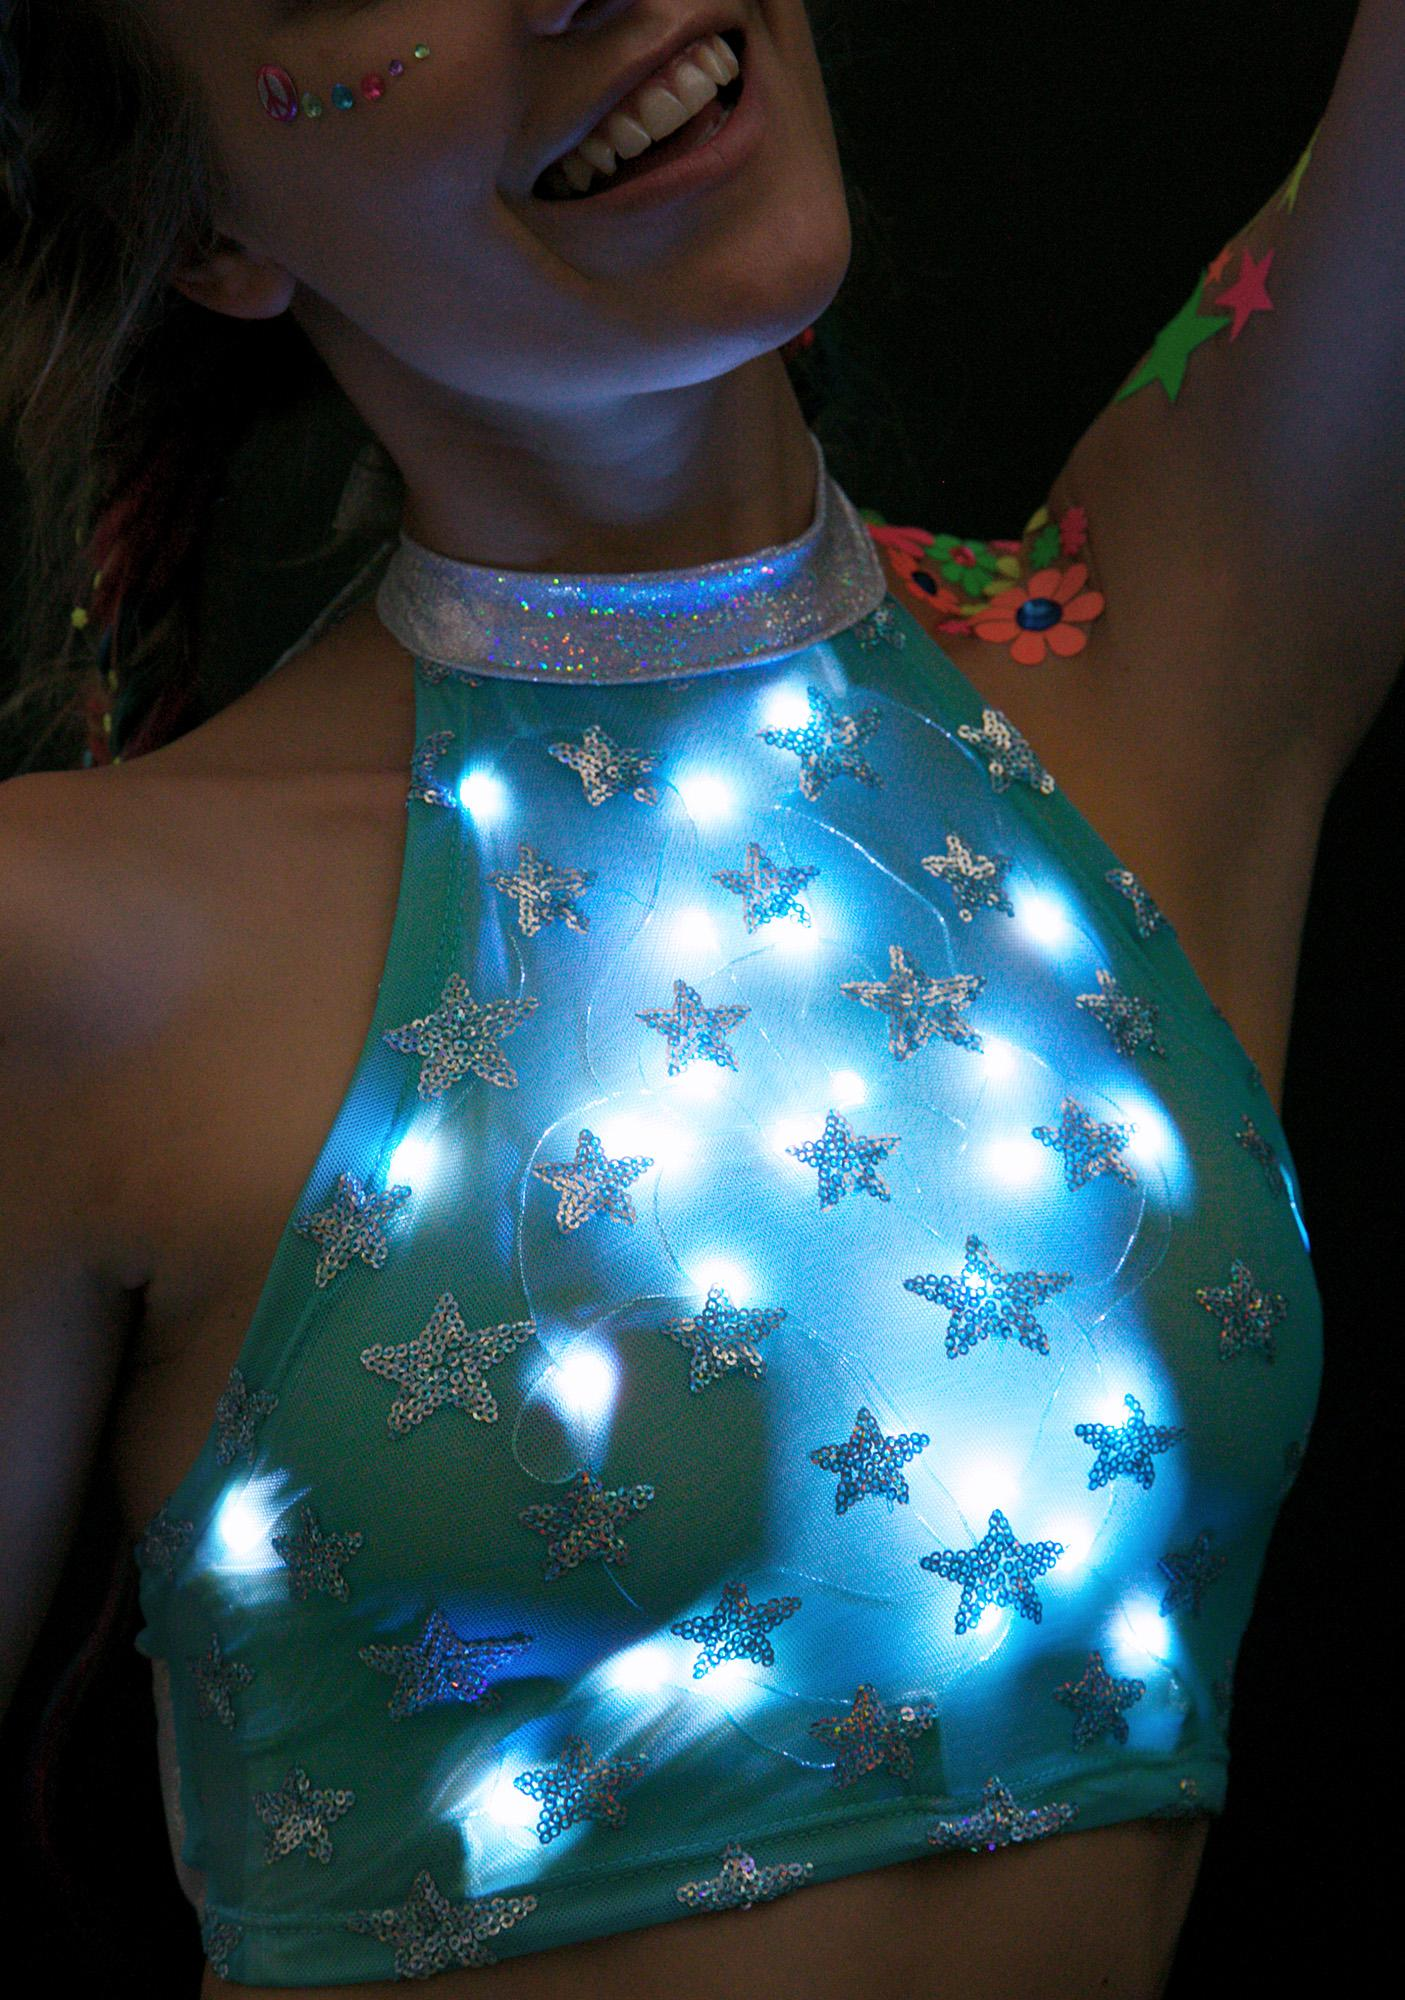 J Valentine Star Voyage Light-Up Halter Top